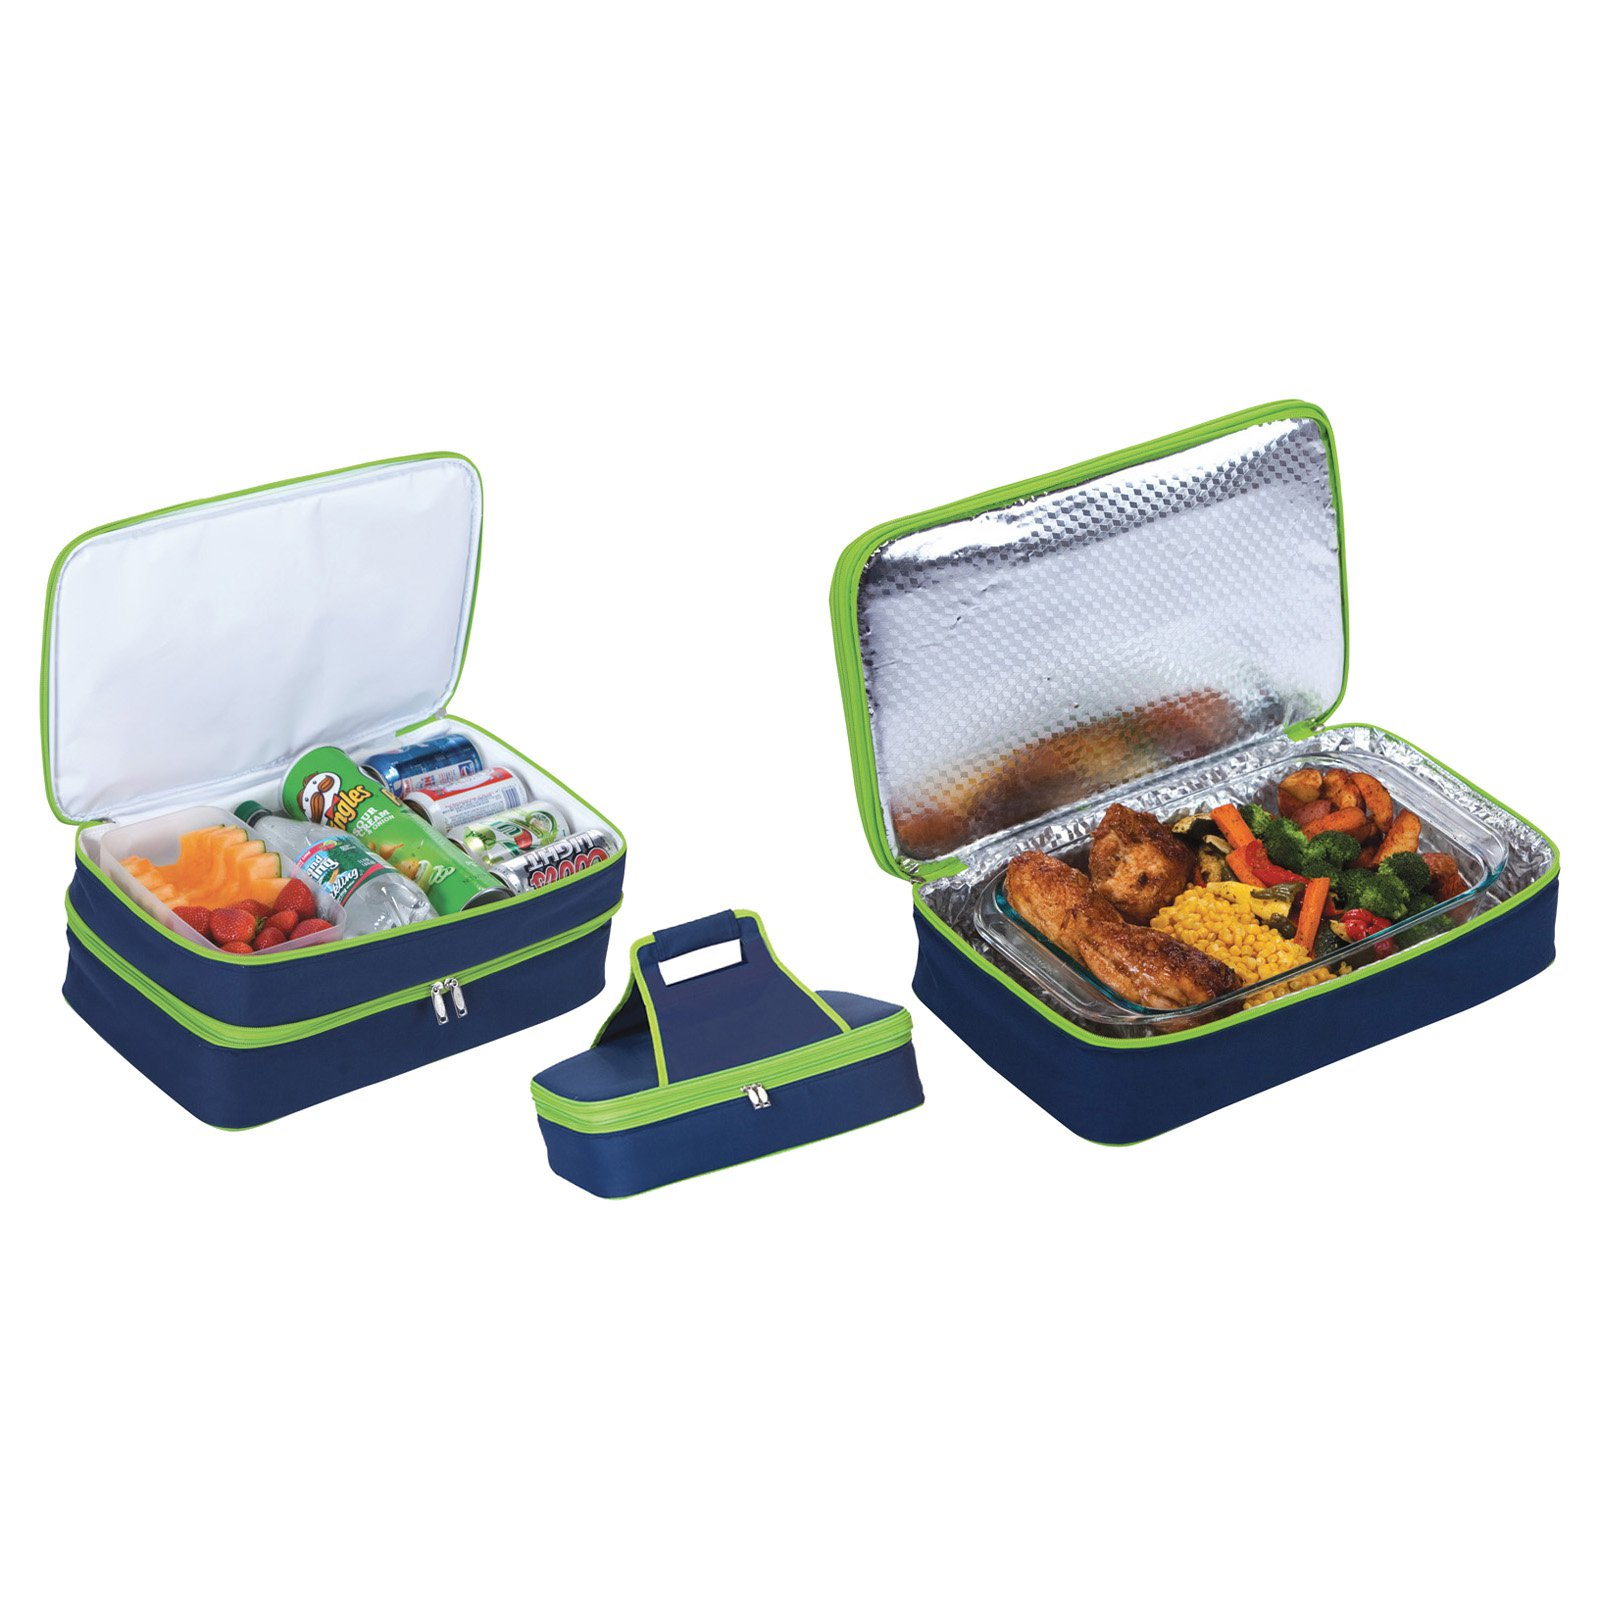 Picnic Plus Entertainer Navy Hot and Cold Food Cooler Carrier